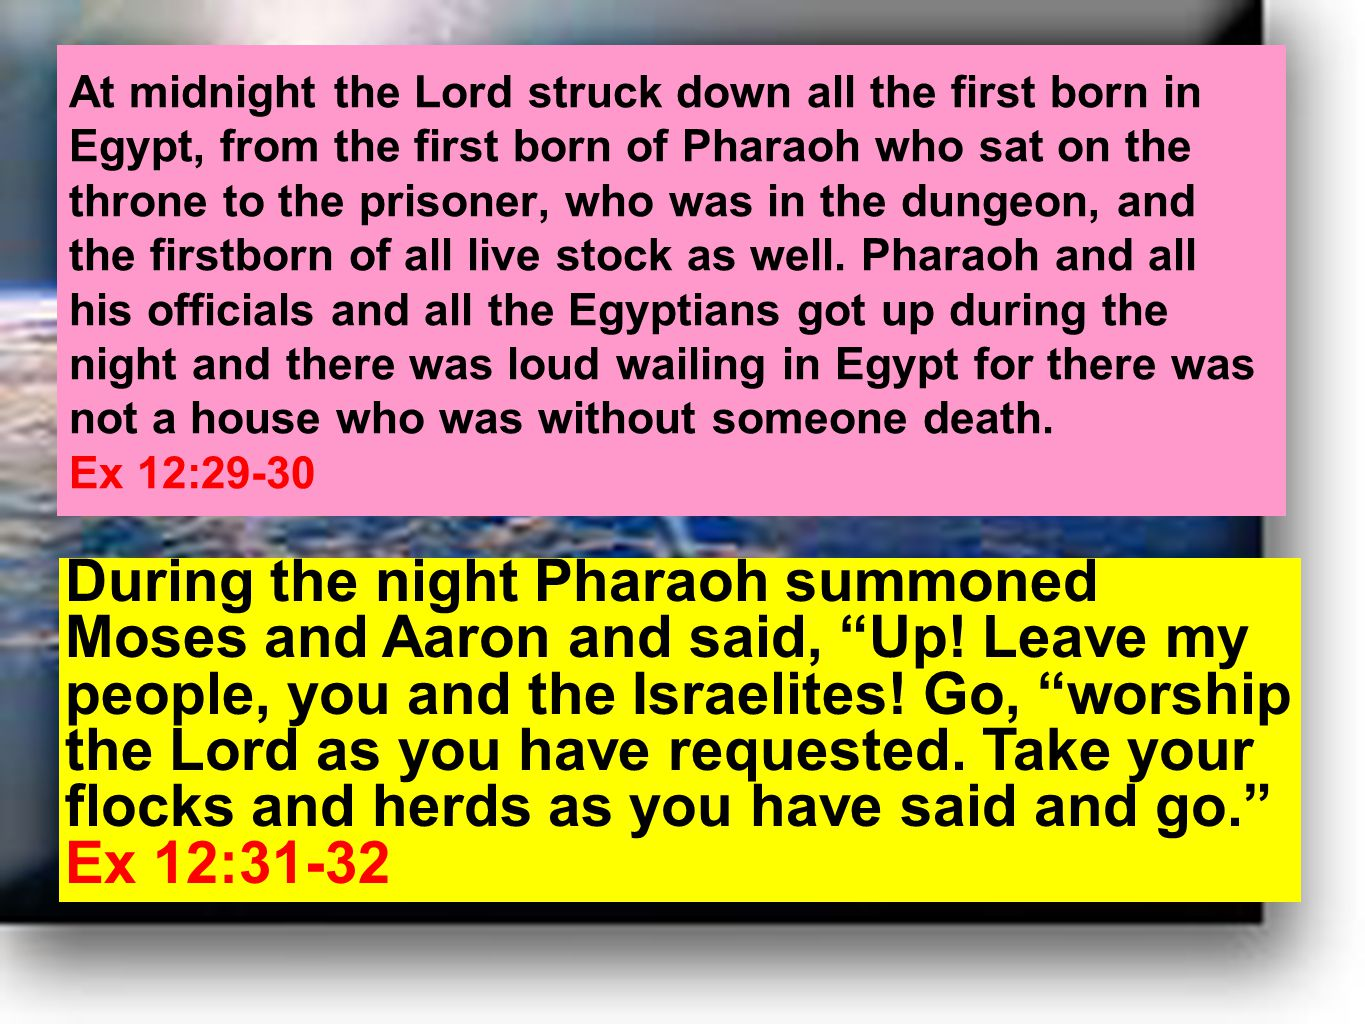 At midnight the Lord struck down all the first born in Egypt, from the first born of Pharaoh who sat on the throne to the prisoner, who was in the dungeon, and the firstborn of all live stock as well.